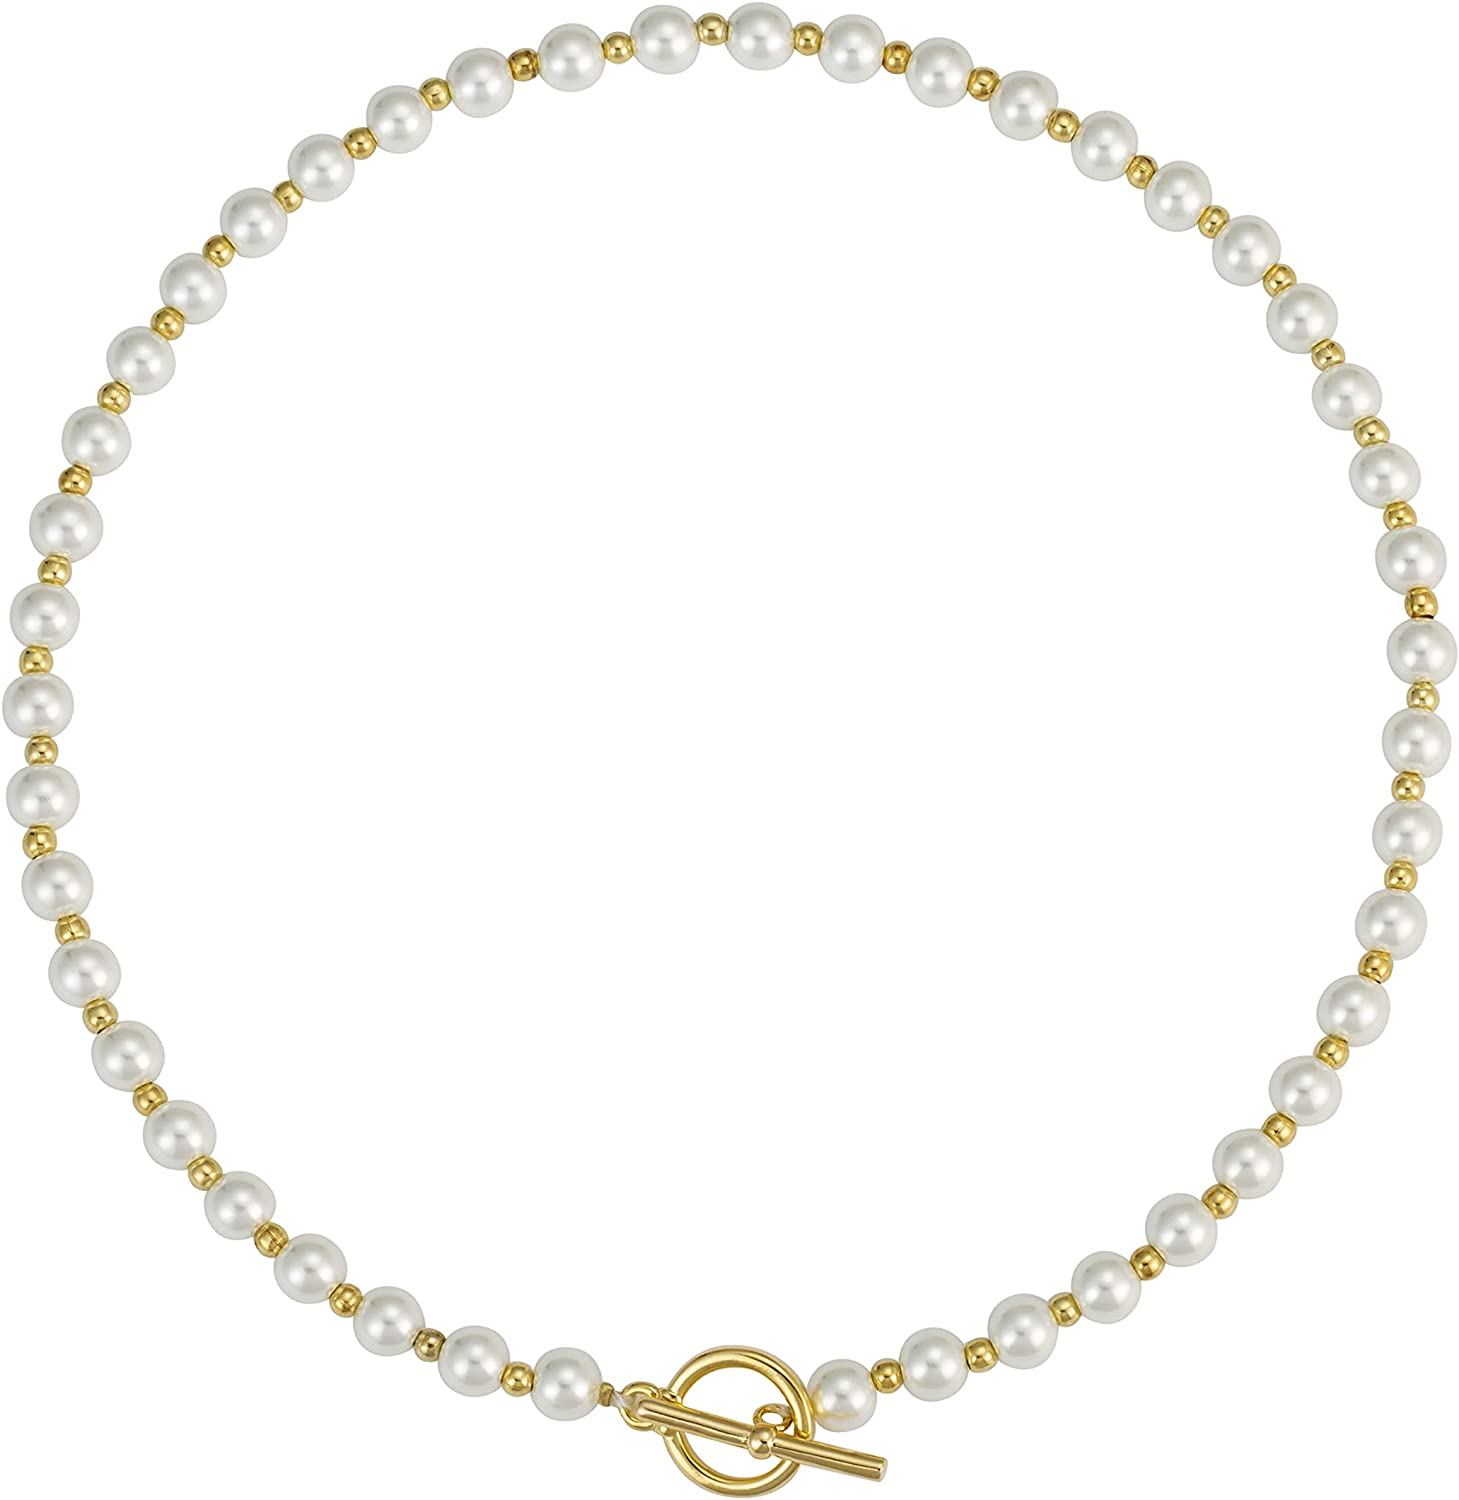 WWBGINF Pearl Beaded Choker Necklace 14K Gold Plated Bead White Simulated Pearl Necklace with Toggle Clasp Handmade Fashion Jewelry for Women Girls